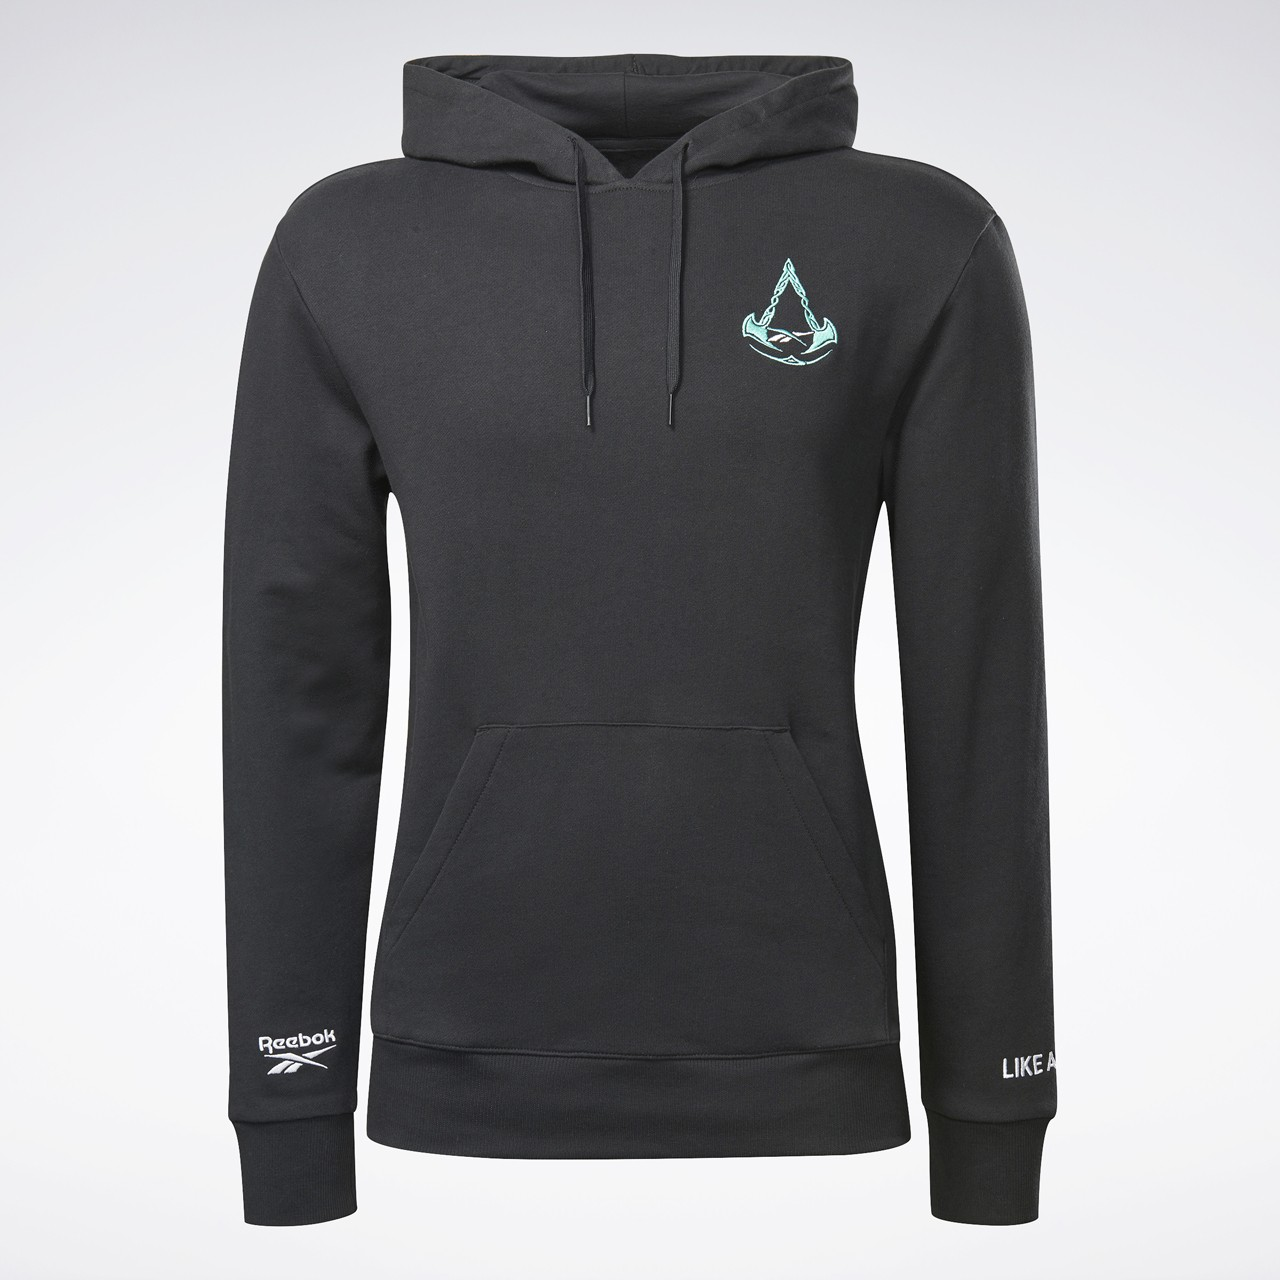 Ubisoft x Reebok 'Assassin's Creed Valhalla' Collaboration collection sneakers club c revenge Classic Leather Legacy zig kinetica release date info buy united states europe november 7 11 game franchise apparel clothing